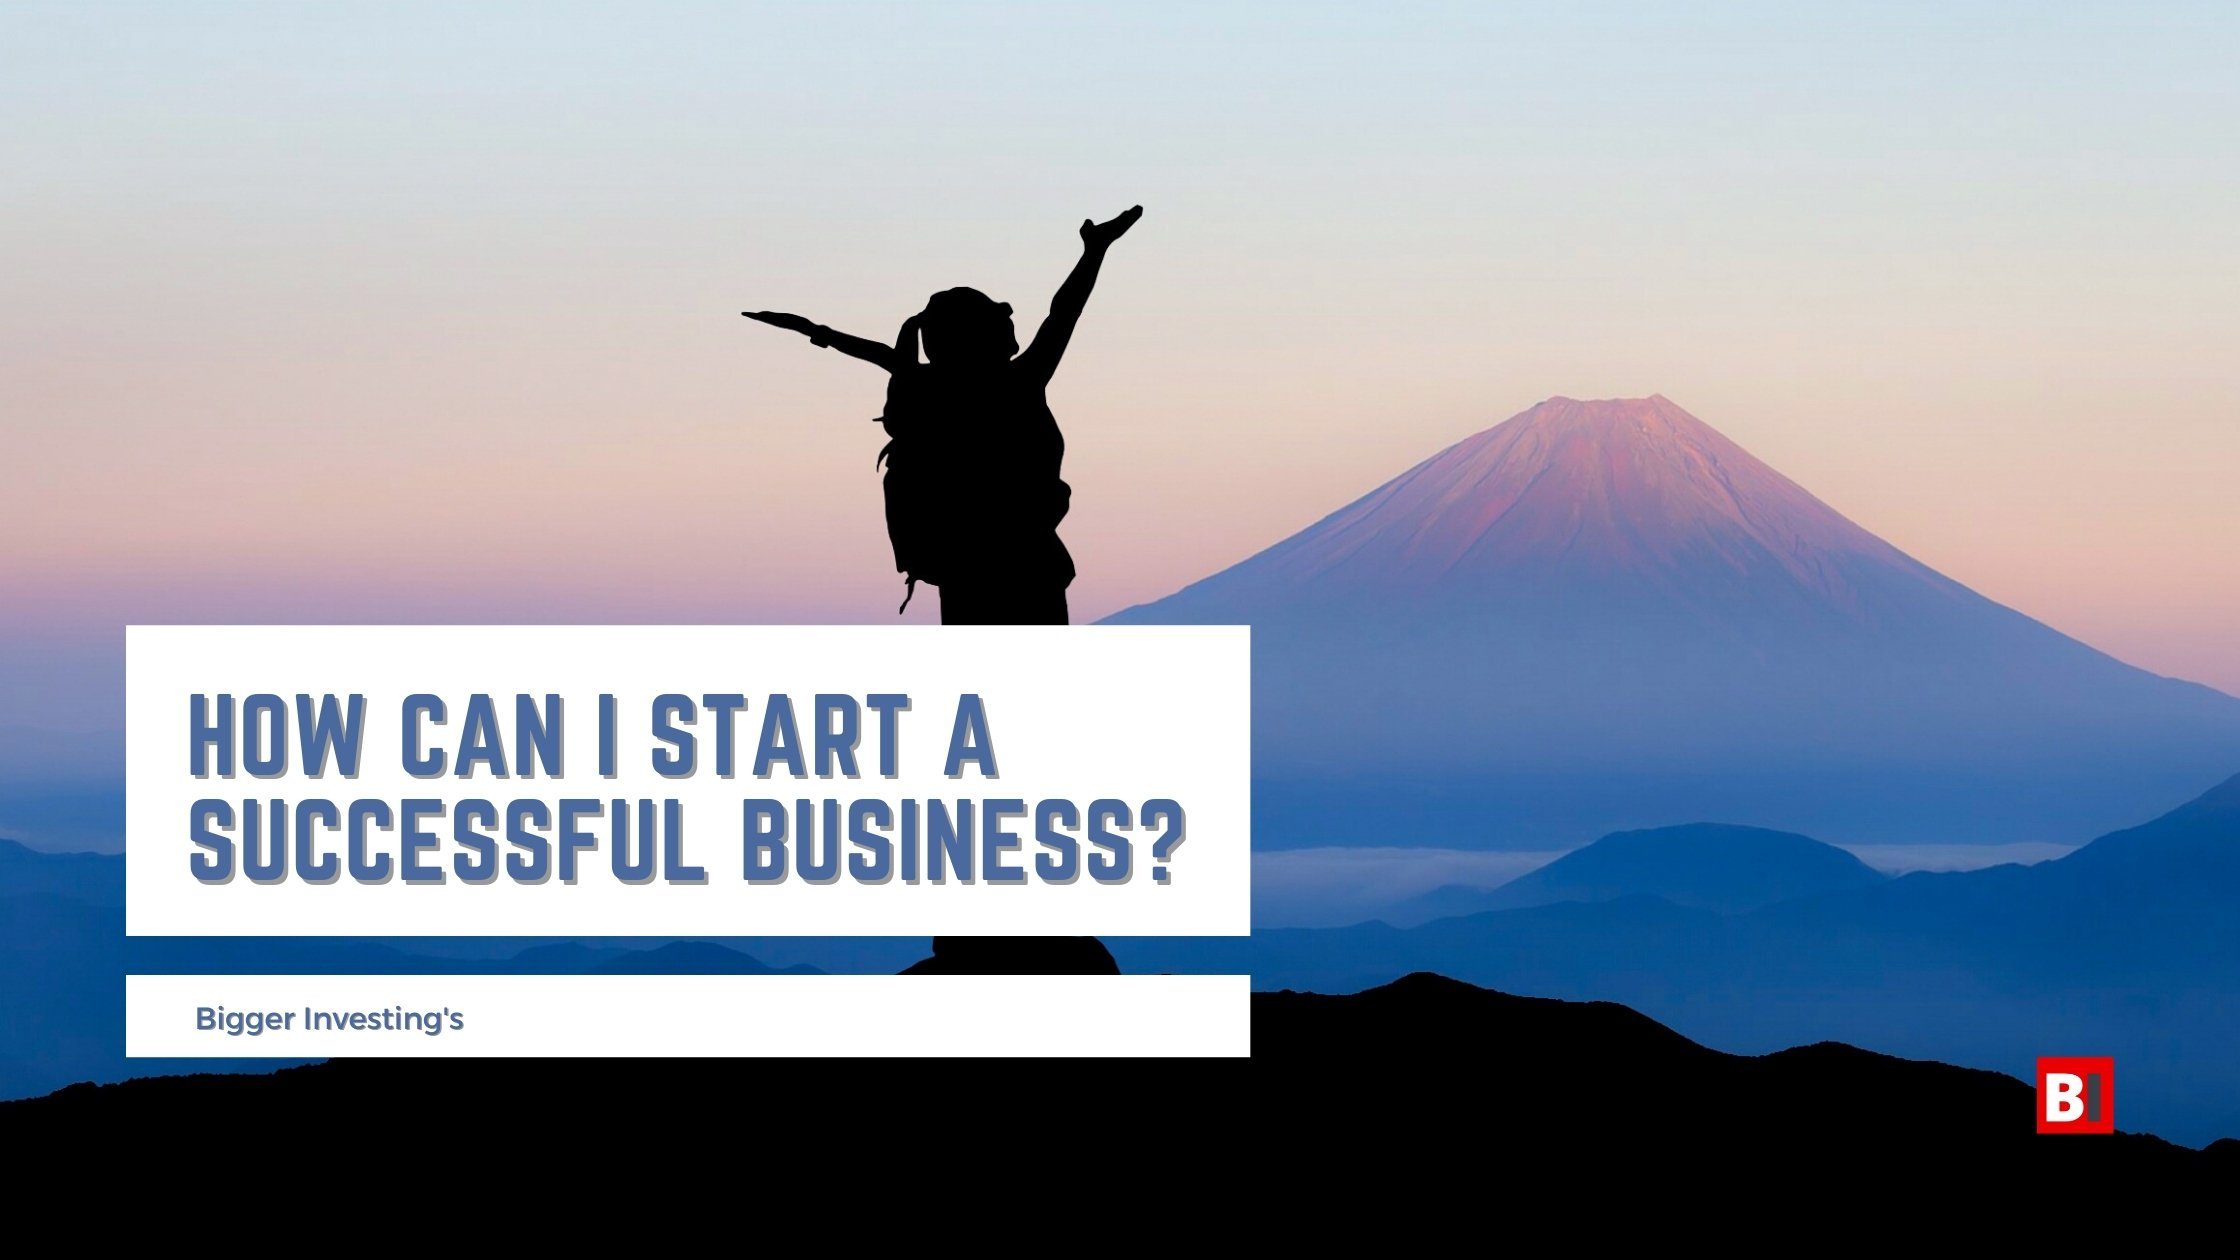 How Can I Start a Successful Business?